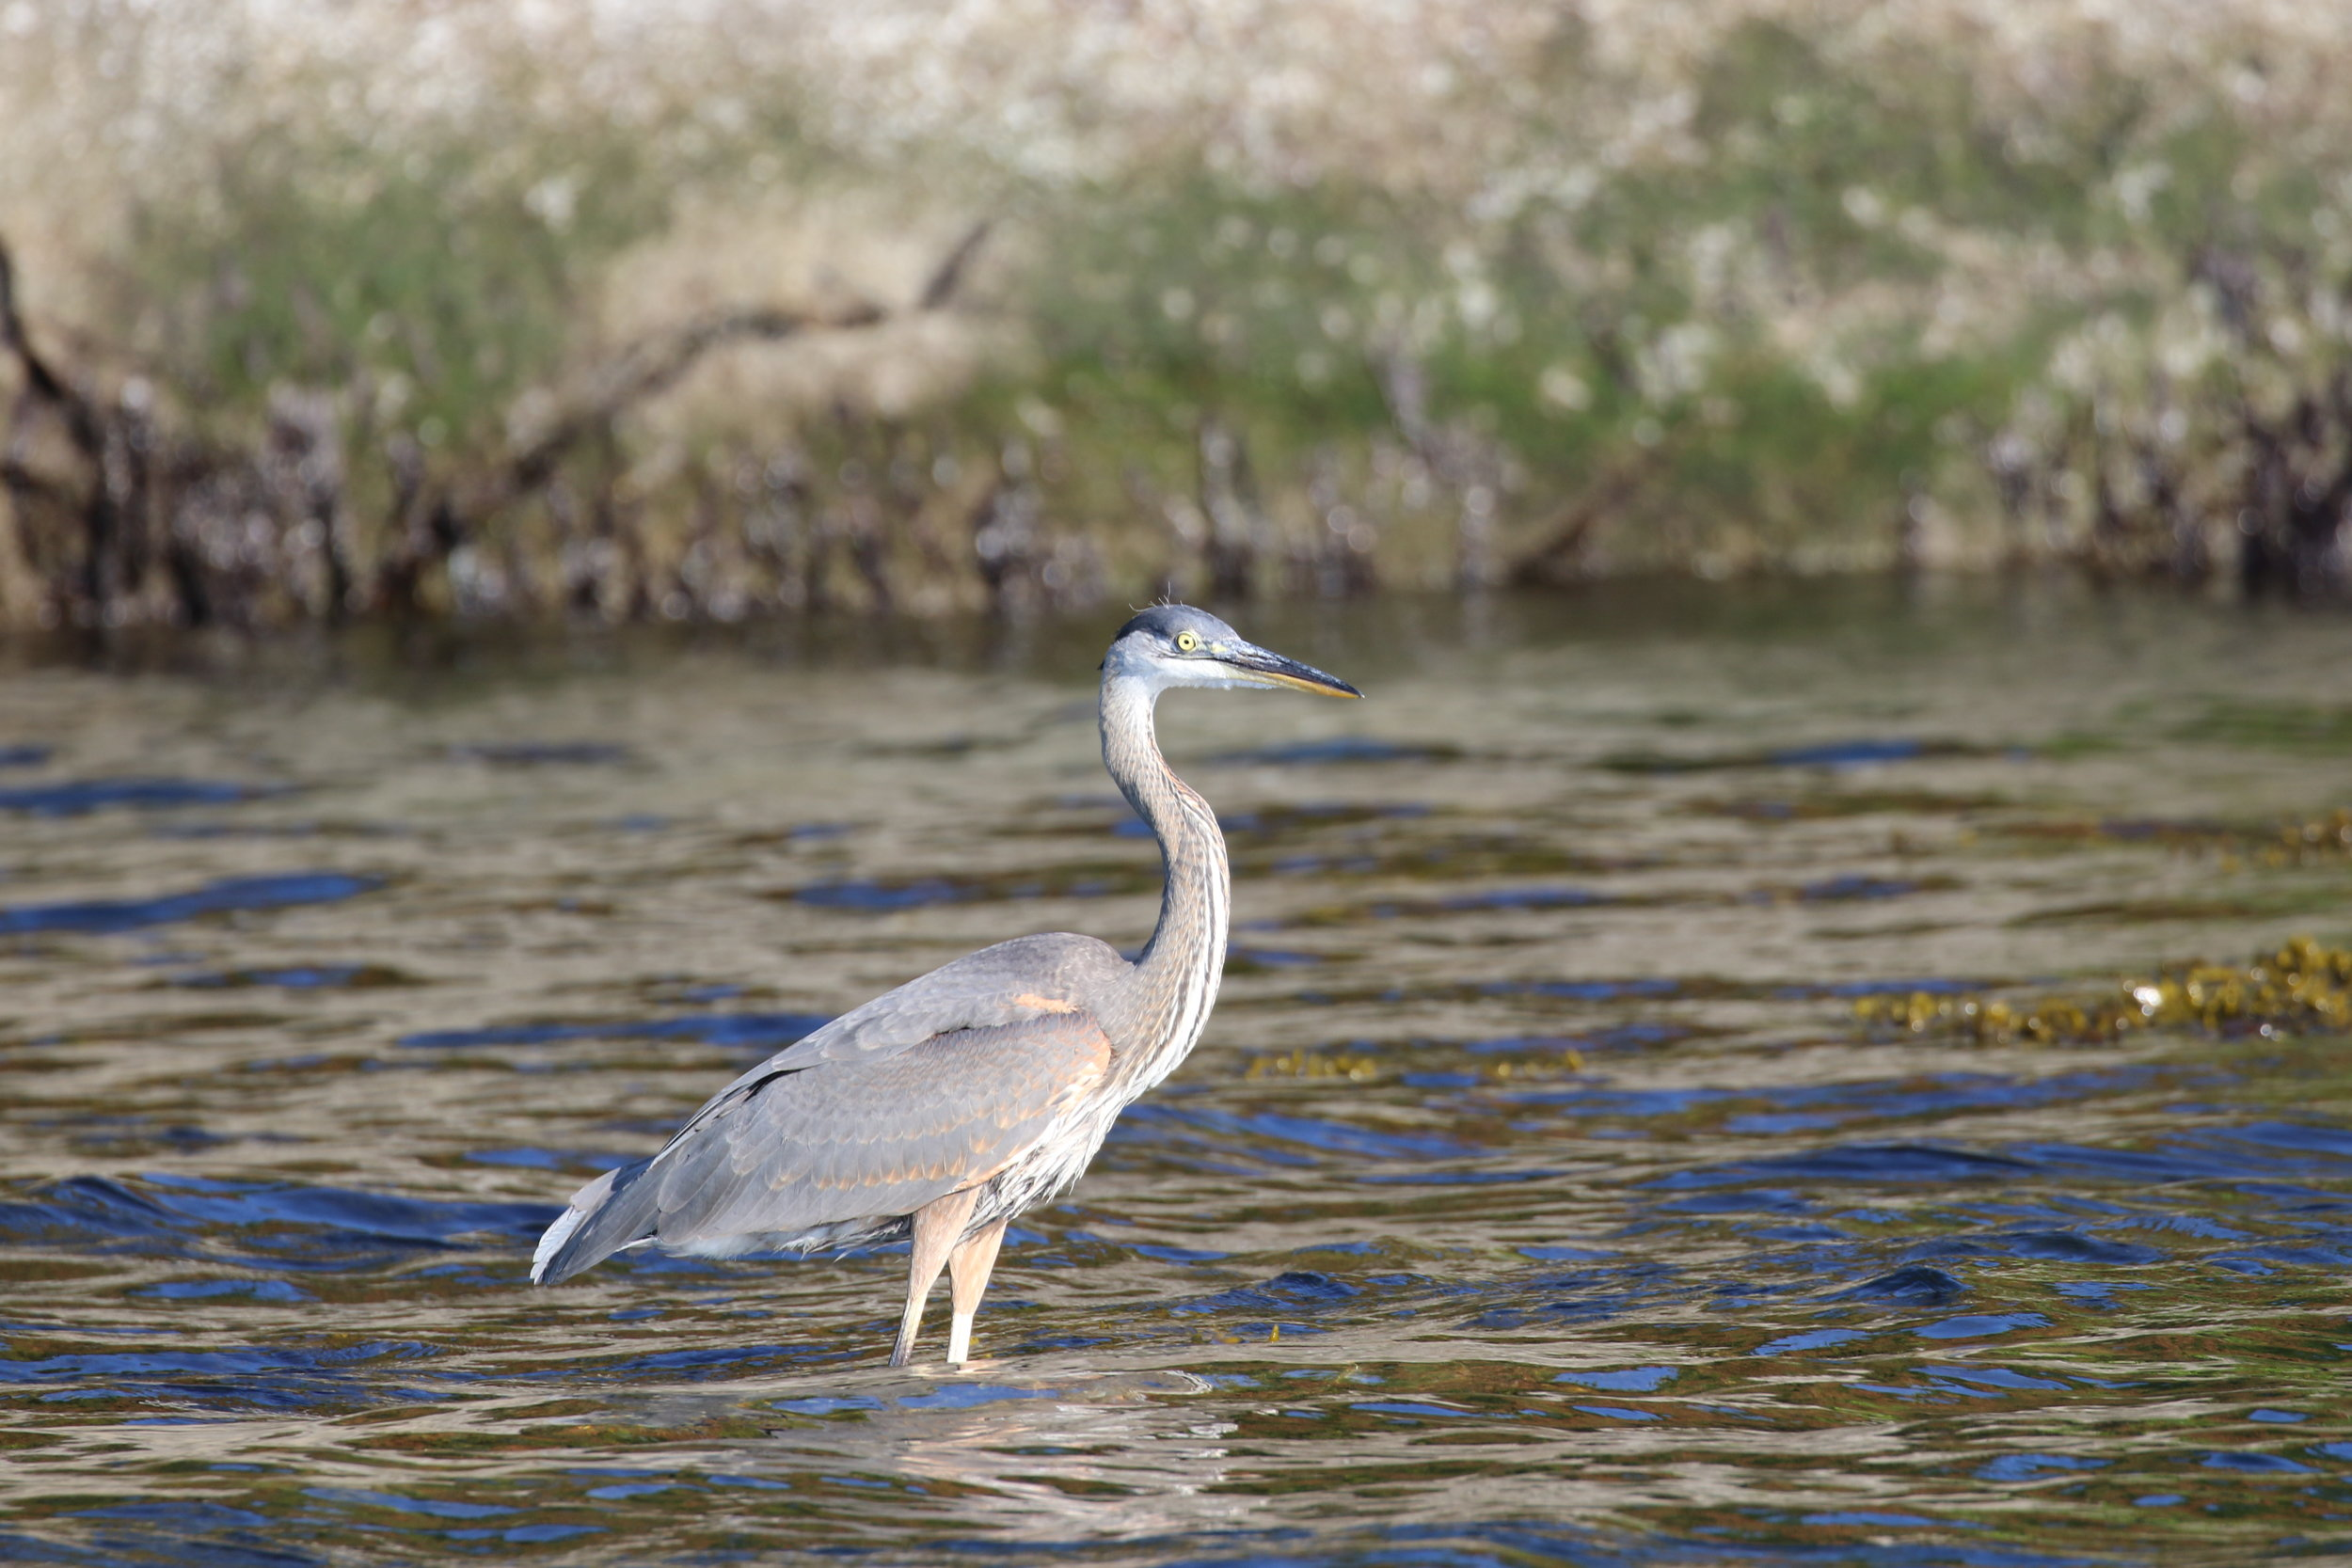 Great Blue Heron. Photo by Rebeka Pirker (3:30)